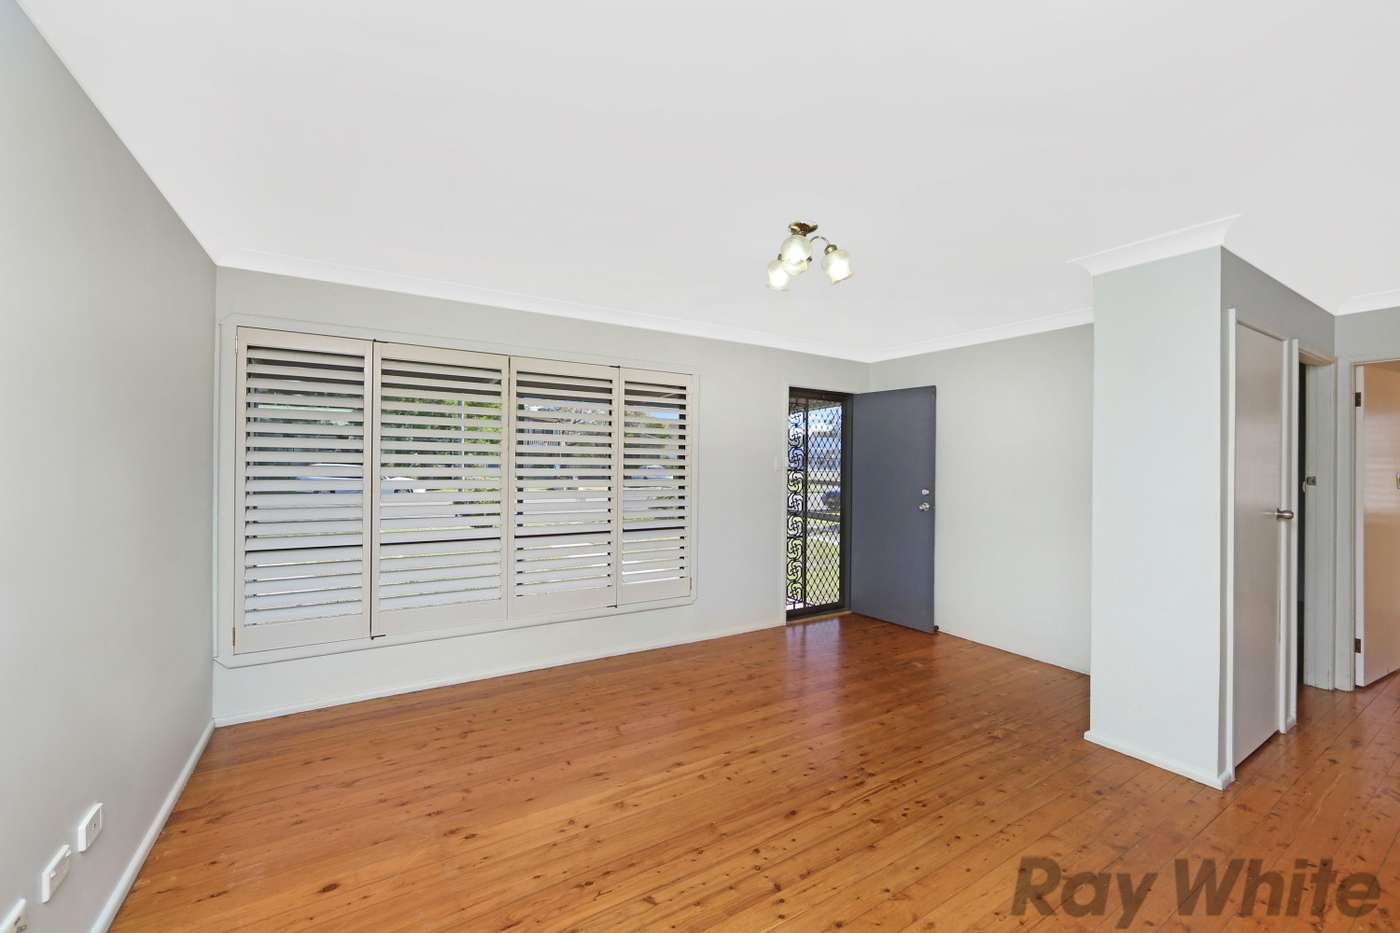 Main view of Homely house listing, 10 Marina Street, Budgewoi, NSW 2262